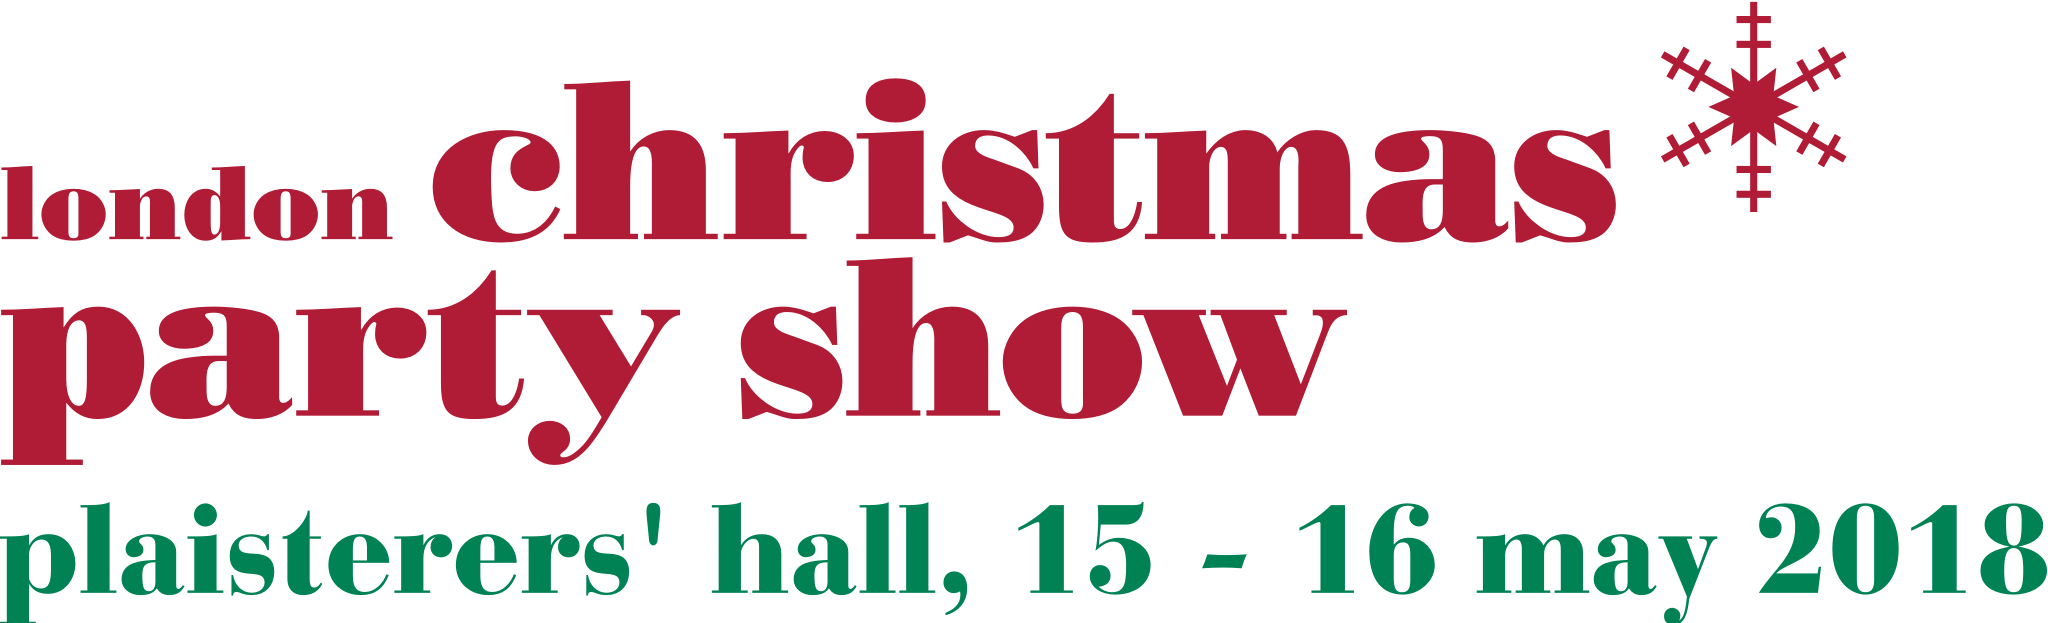 London Christmas Party Show 2018